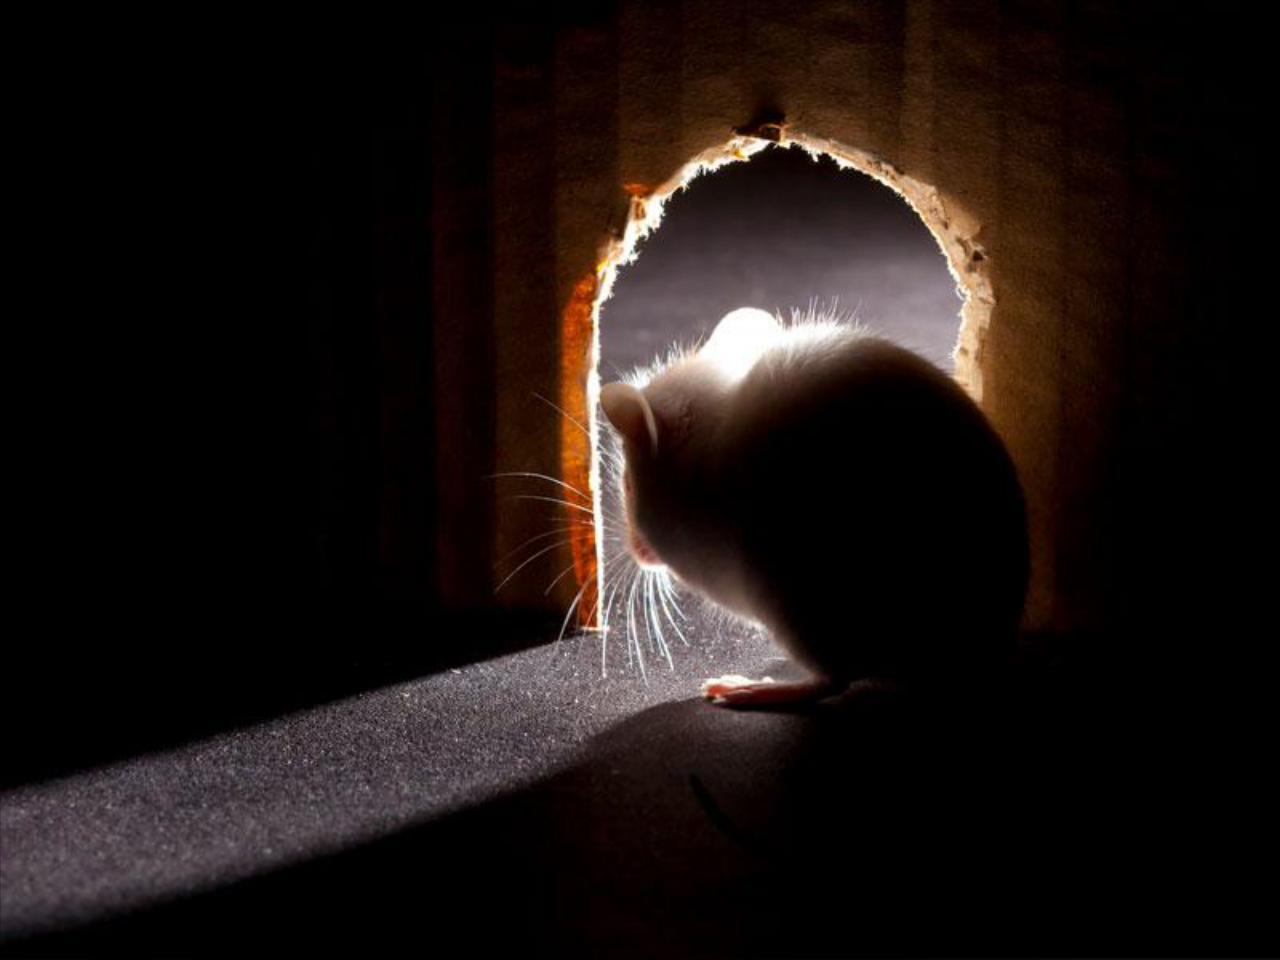 Rodent Services for Residential or Commercial